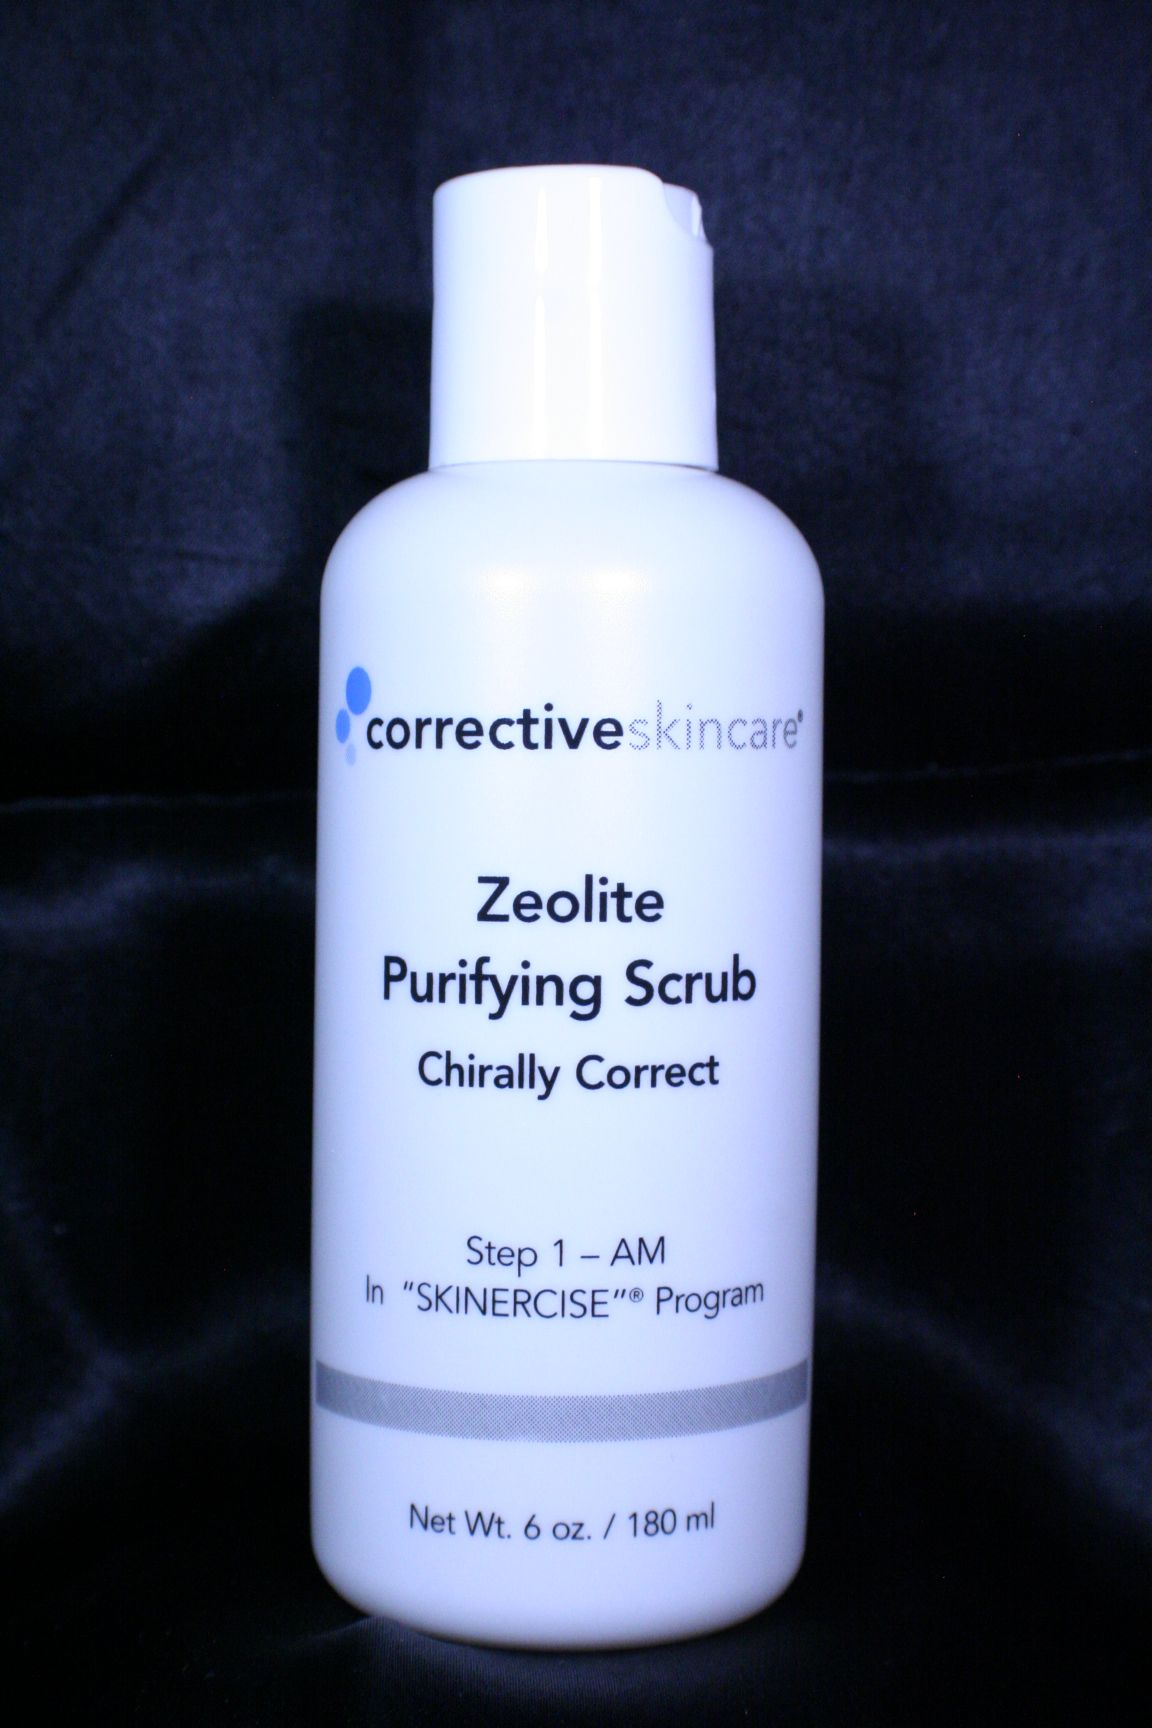 Zeolites grab environmental toxins and pull them away from your skin, leaving it rejuvenated and free of damage while real Blue Bonnet extract provides soothing chiromatherapy.